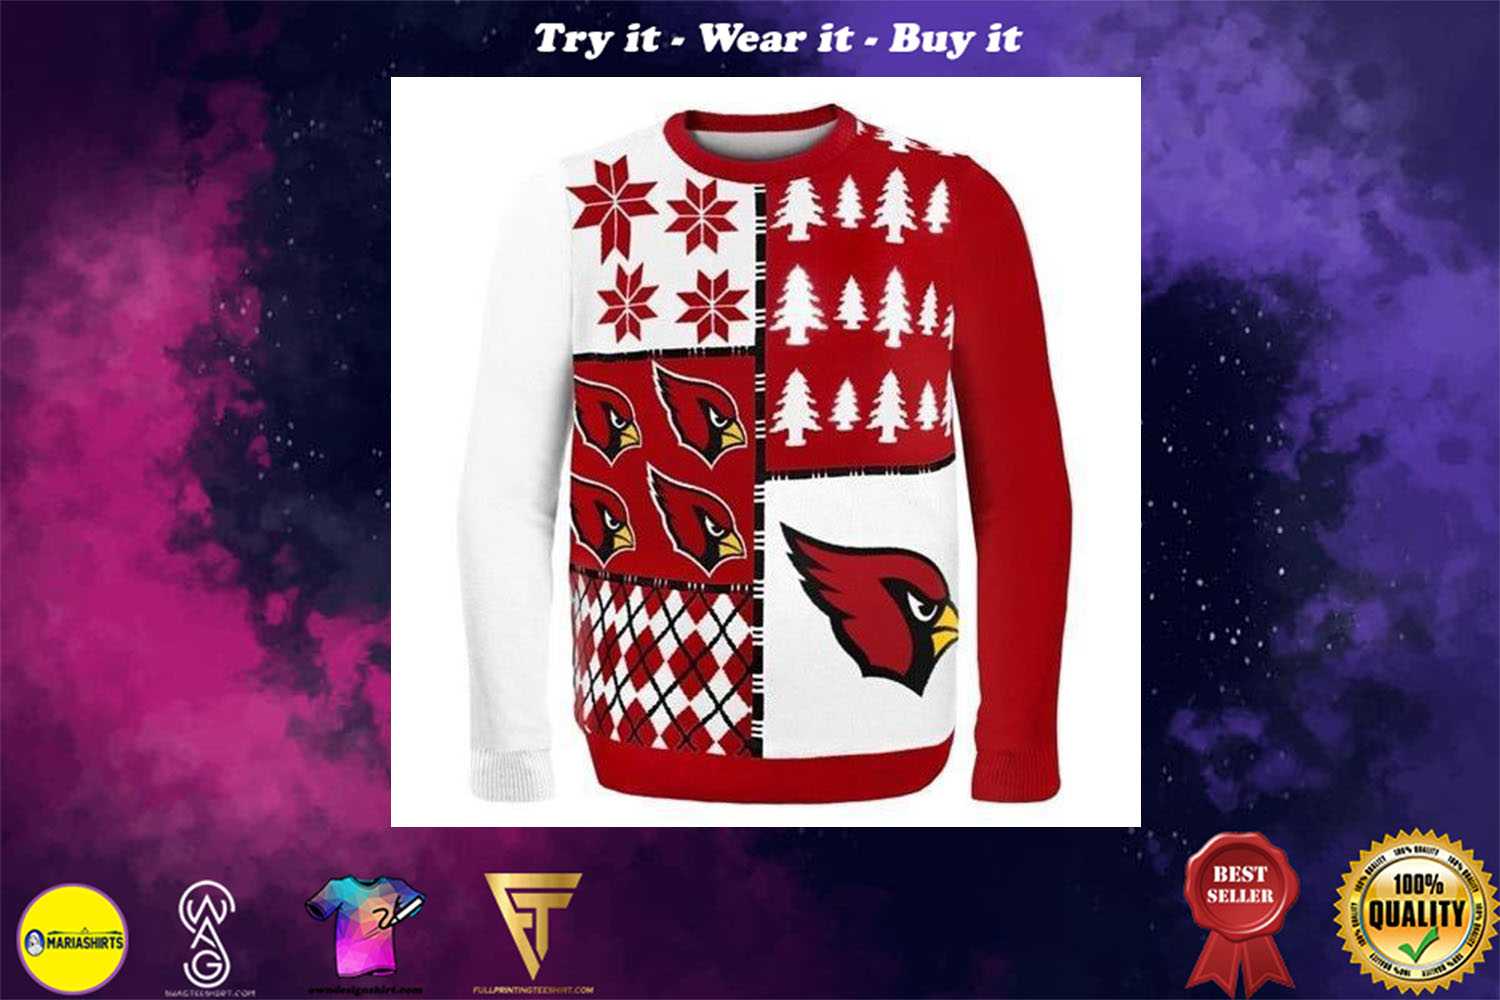 [special edition] arizona cardinals busy block ugly christmas sweater - maria